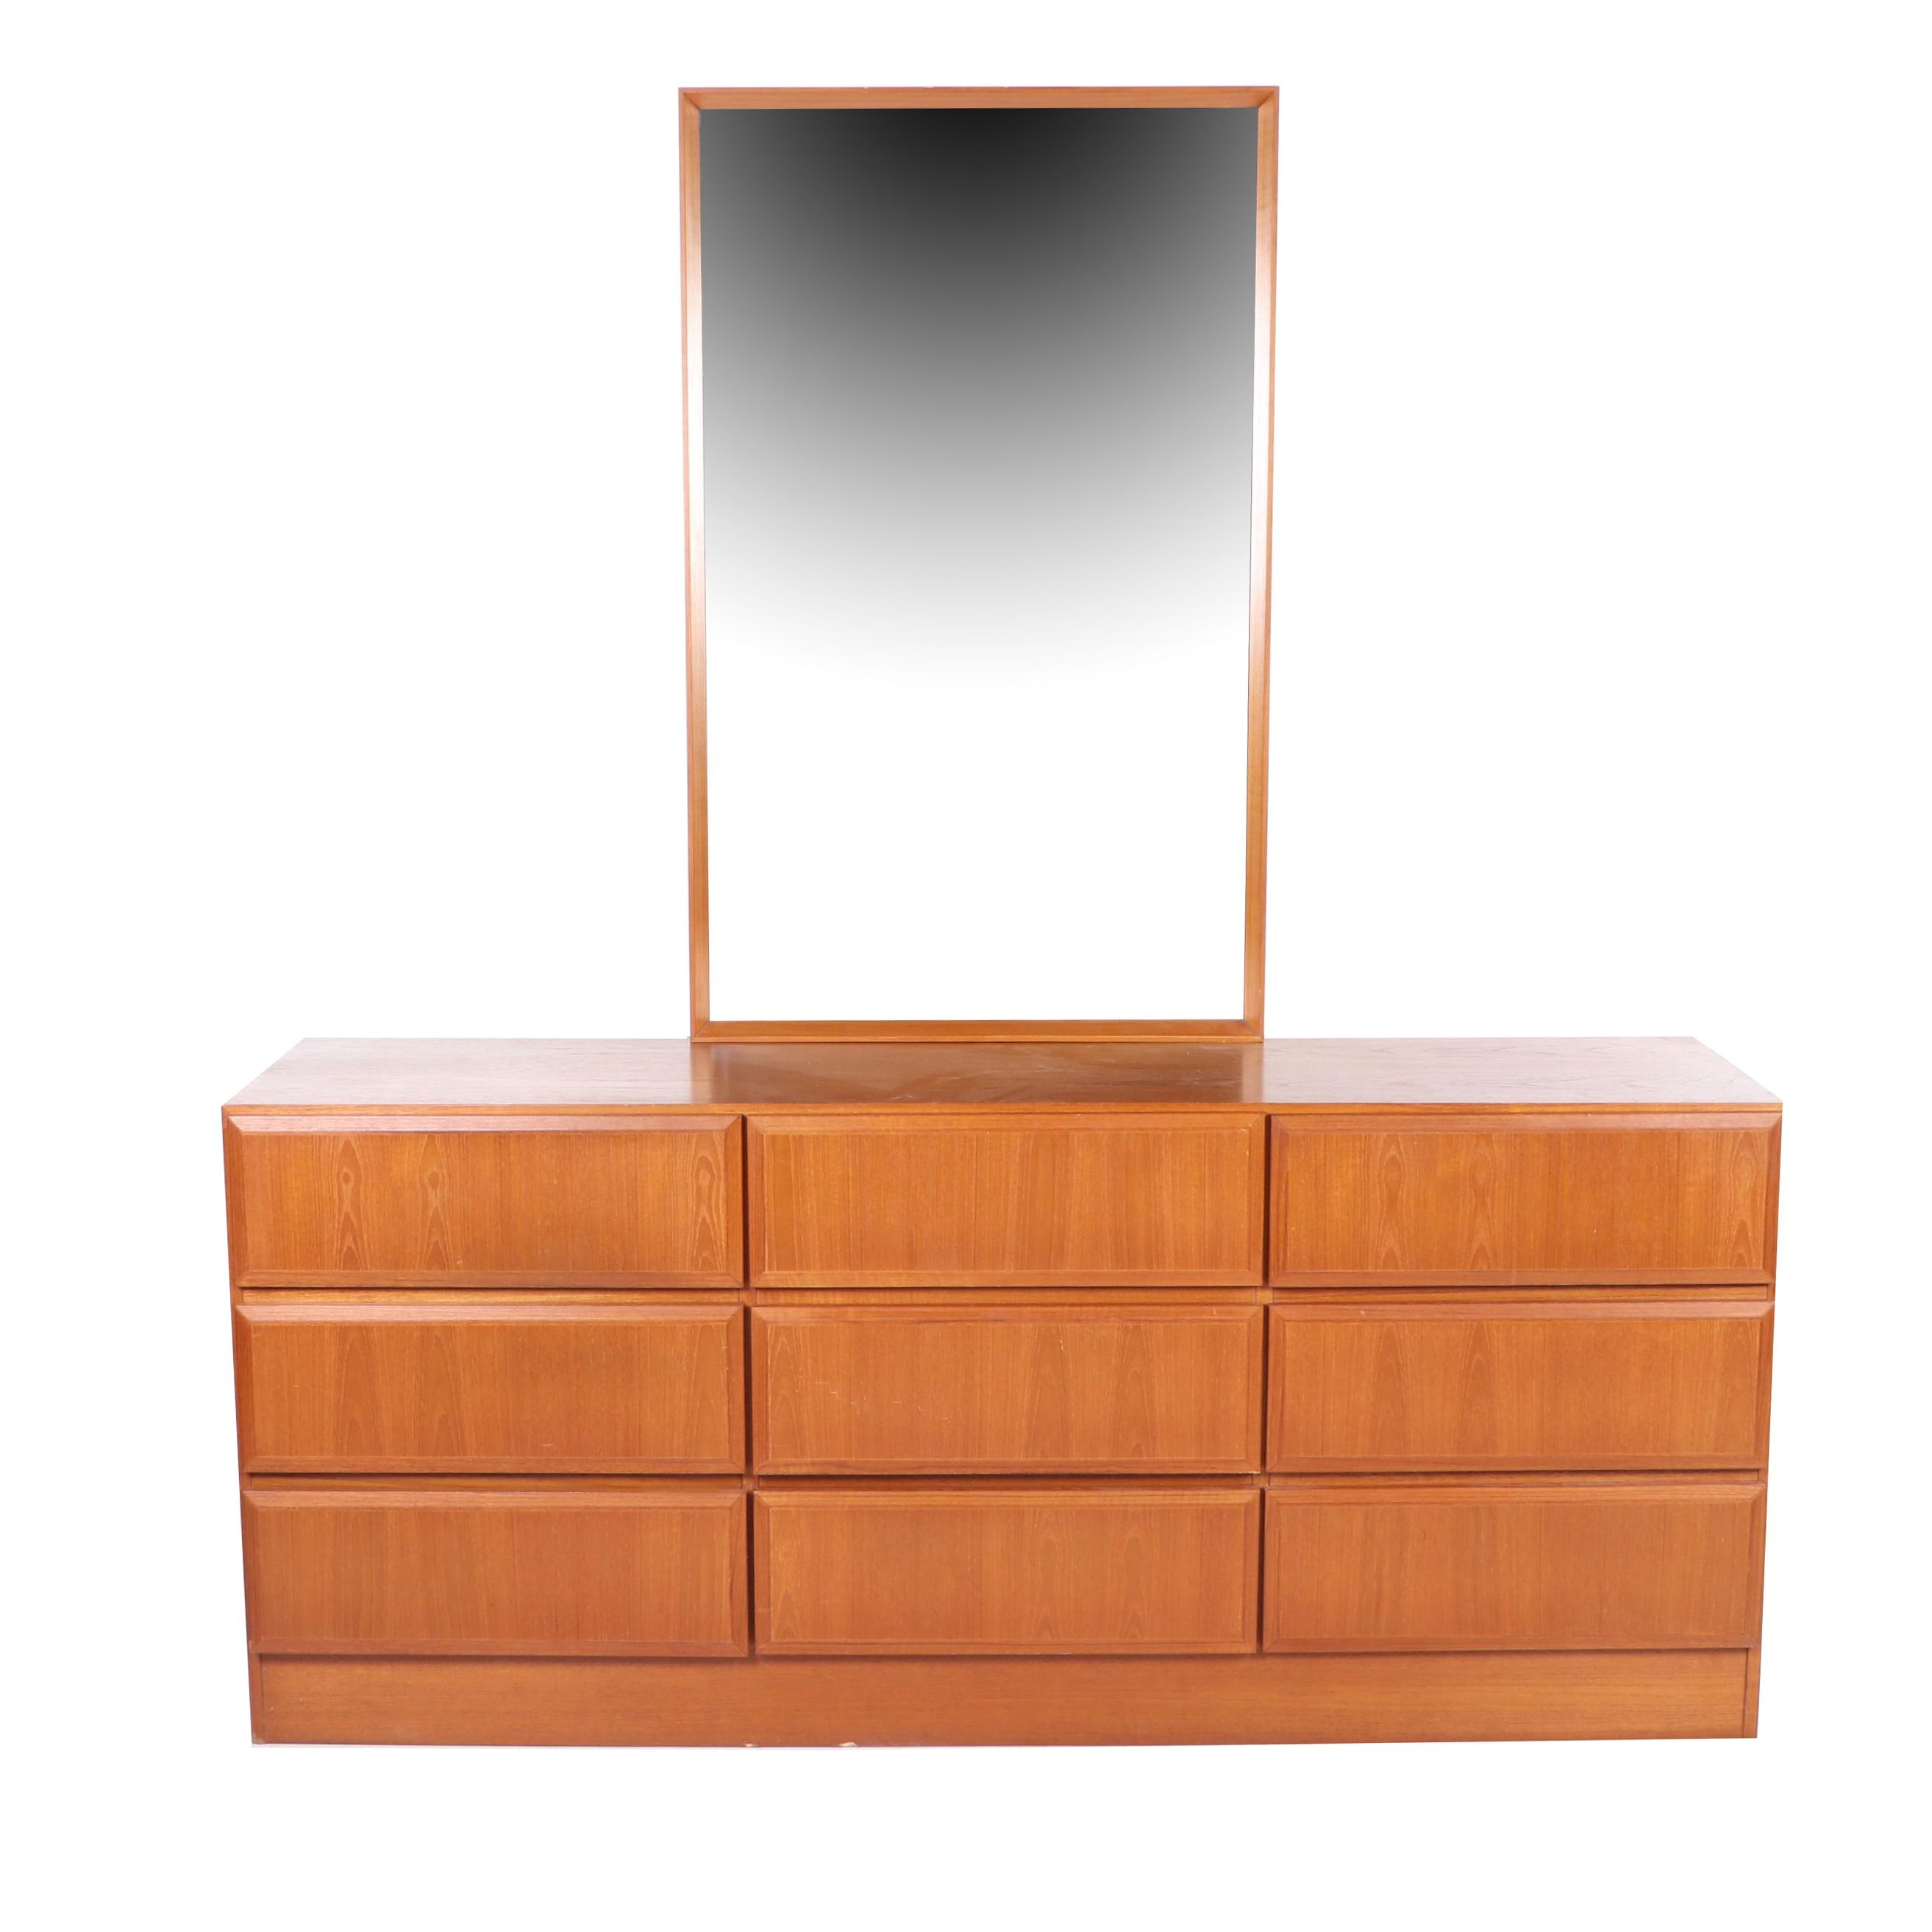 Danish Modern Dresser with Mirror, Mid-Century